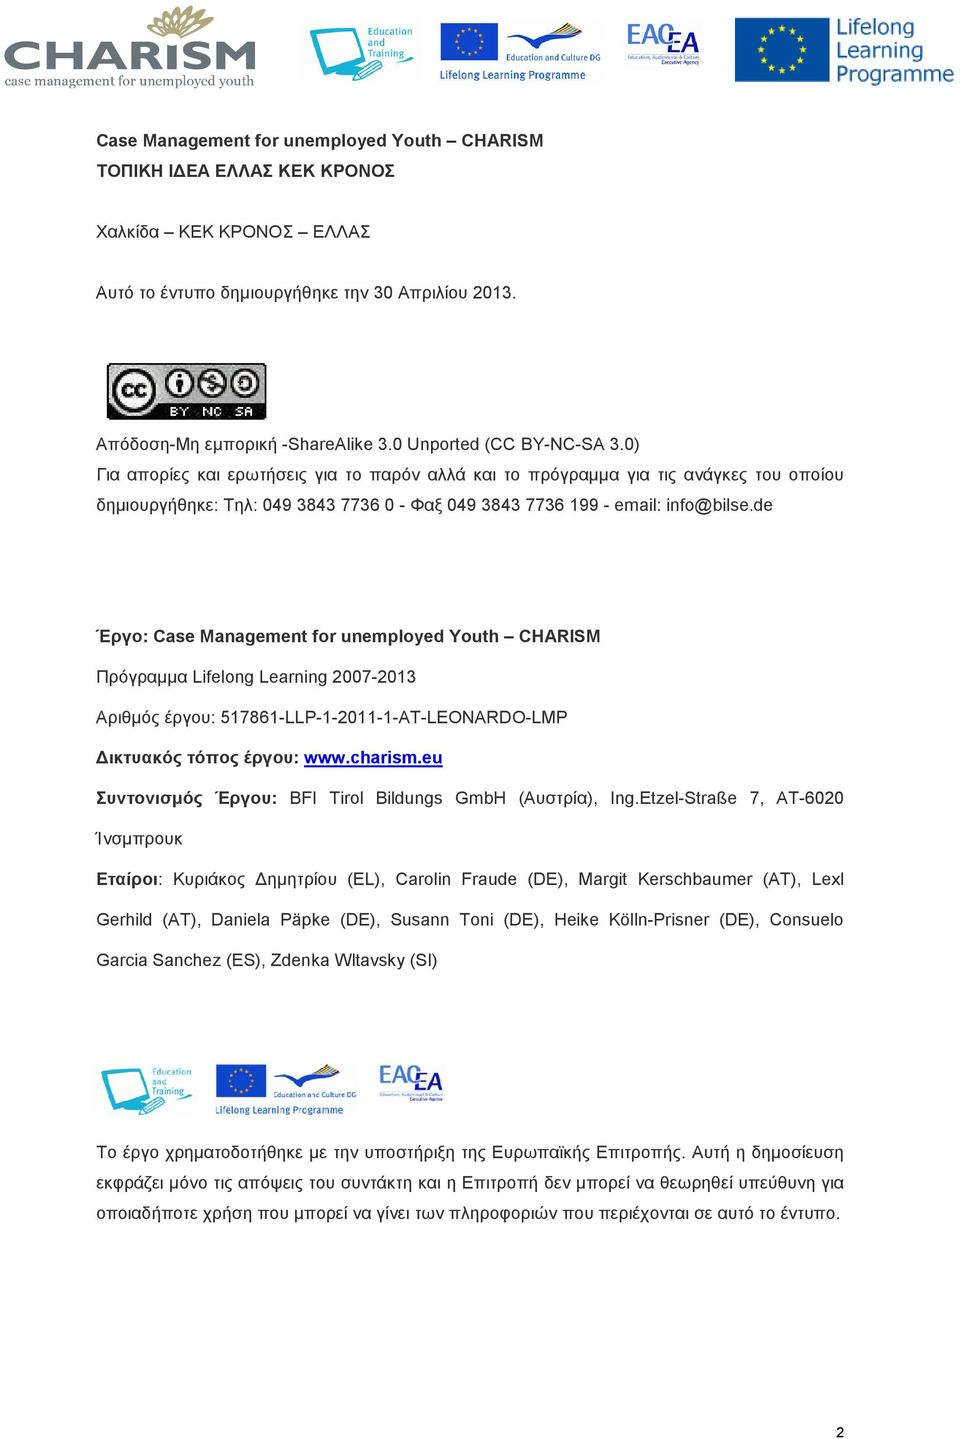 de Έργο: Case Management for unemployed Youth CHARISM Πρόγραµµα Lifelong Learning 2007-2013 Αριθµός έργου: 517861-LLP-1-2011-1-AT-LEONARDO-LMP ικτυακός τόπος έργου: www.charism.